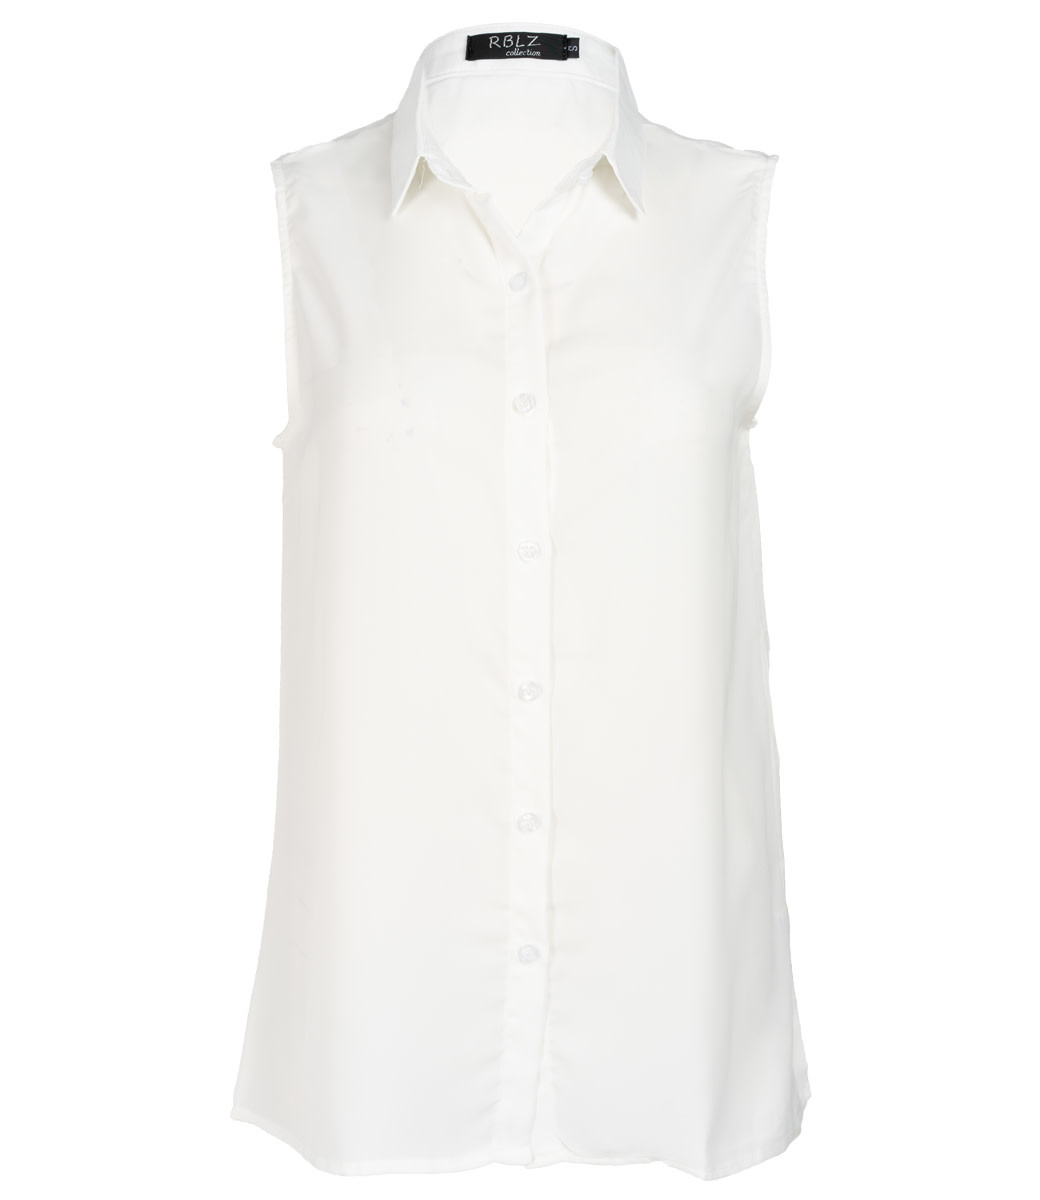 Rebelz Collection Blouse off white Petra